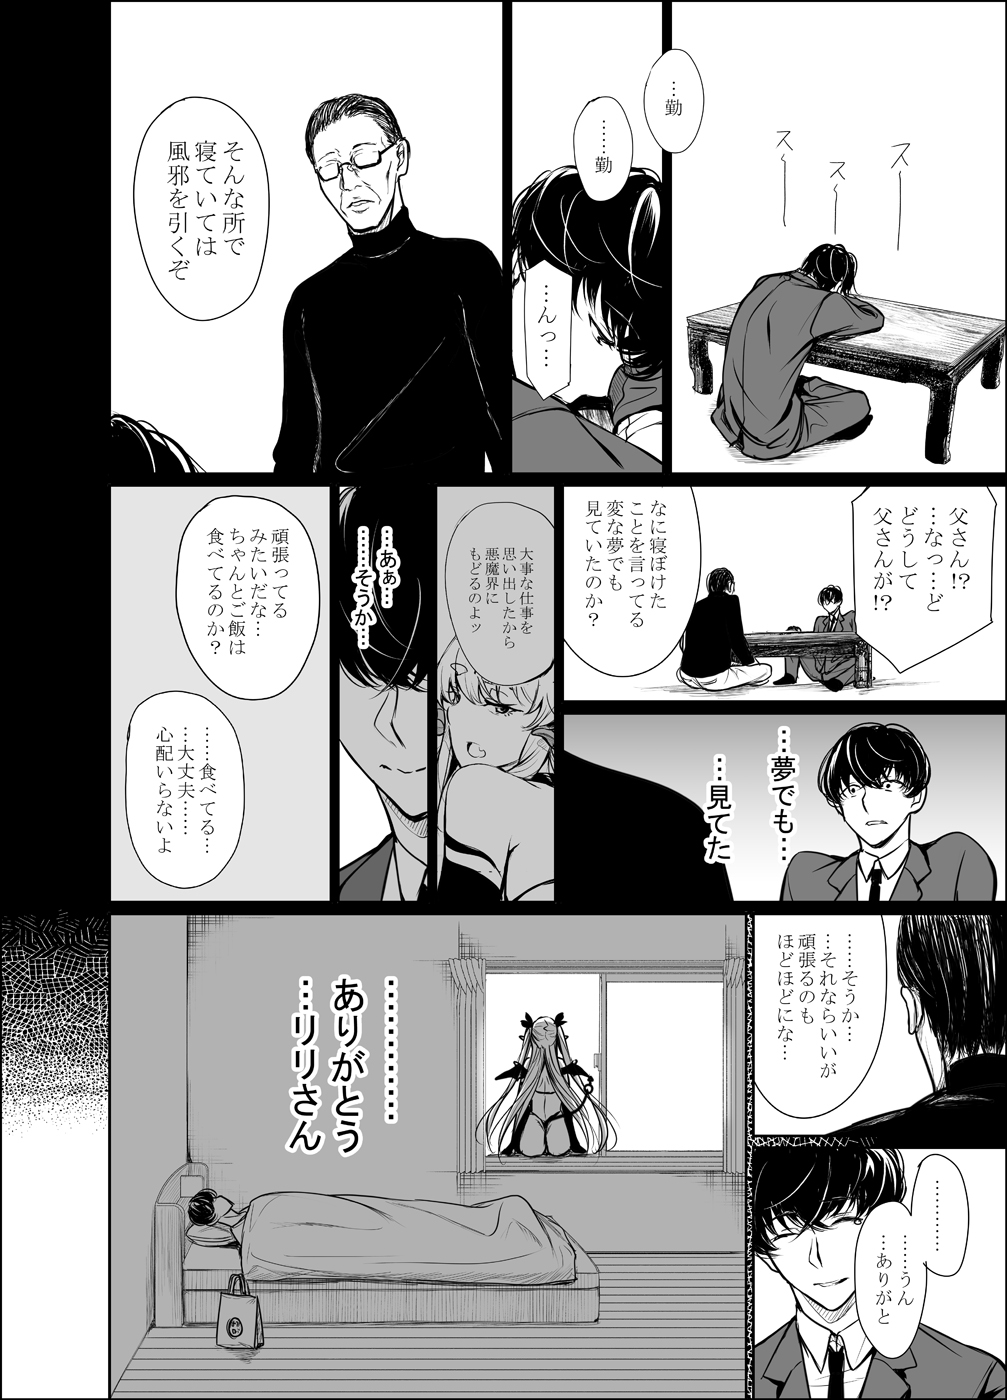 1girl 2boys bare_shoulders bow comic demon_girl demon_horns demon_tail dreaming elbow_gloves eyebrows_visible_through_hair formal gentsuki glasses gloves greyscale hair_bow highres horns kuroki_tsutomu lily_(gentsuki) long_hair monochrome multiple_boys necktie open_window original revealing_clothes salaryman sitting sleeping speech_bubble succubus suit sweater table tail tearing_up thick_eyebrows thigh-highs translation_request turtleneck turtleneck_sweater two_side_up window wooden_floor